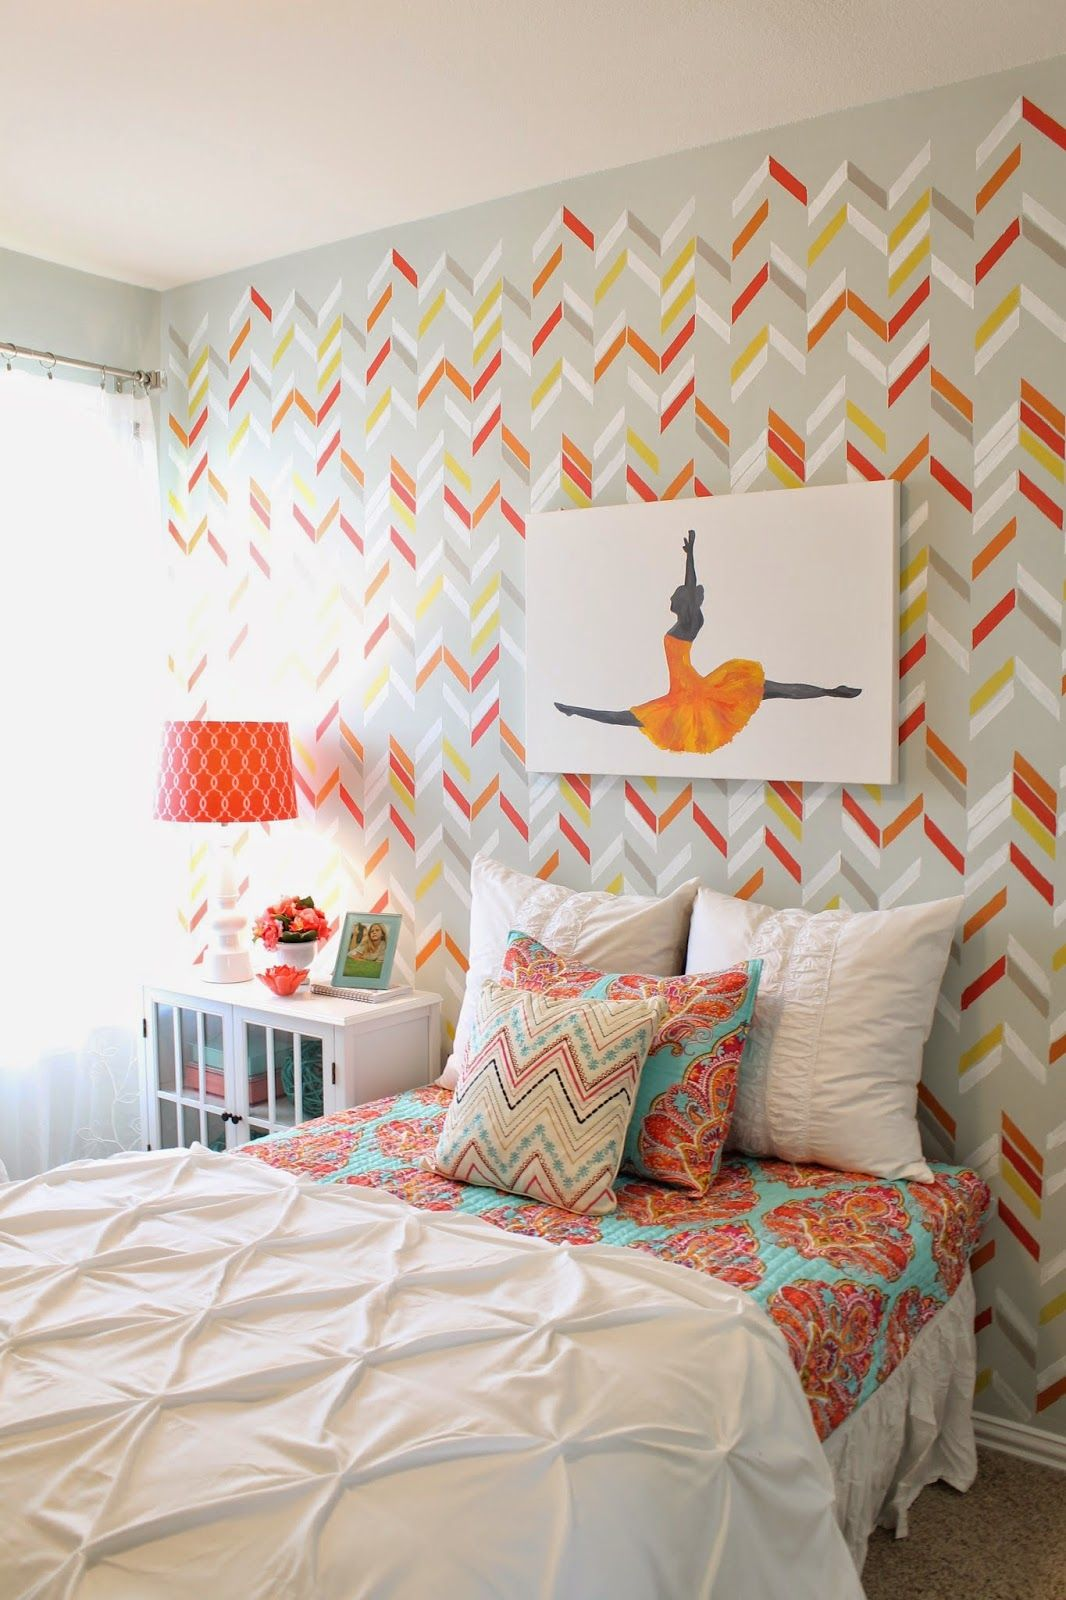 Herringbone shuffle wall stencil diy bedroom wall stenciling a unique take on a herringbone stencil design this herringbone shuffle allover wall stencil from amipublicfo Image collections